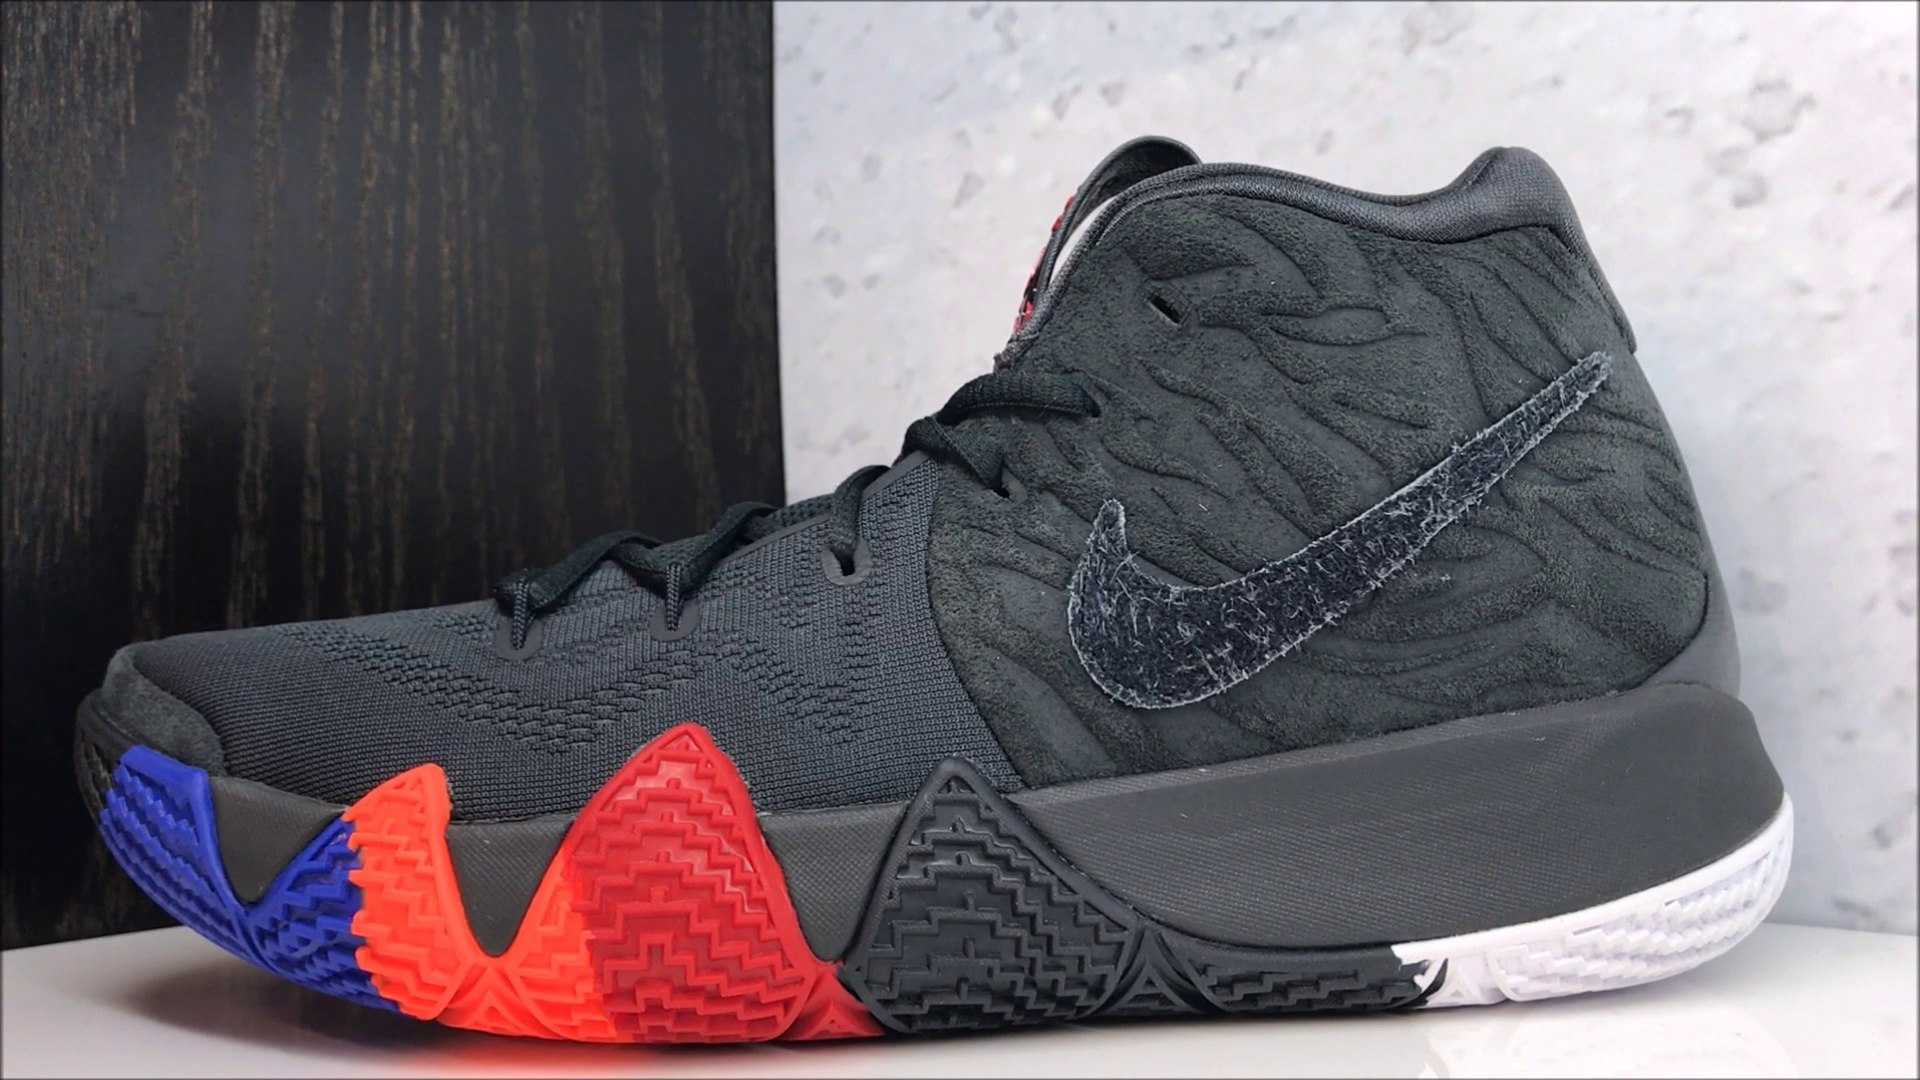 best loved ed4ee c451f NIKE KYRIE IRVING 4 YEAR OF THE MONKEY SNEAKER REVIEW